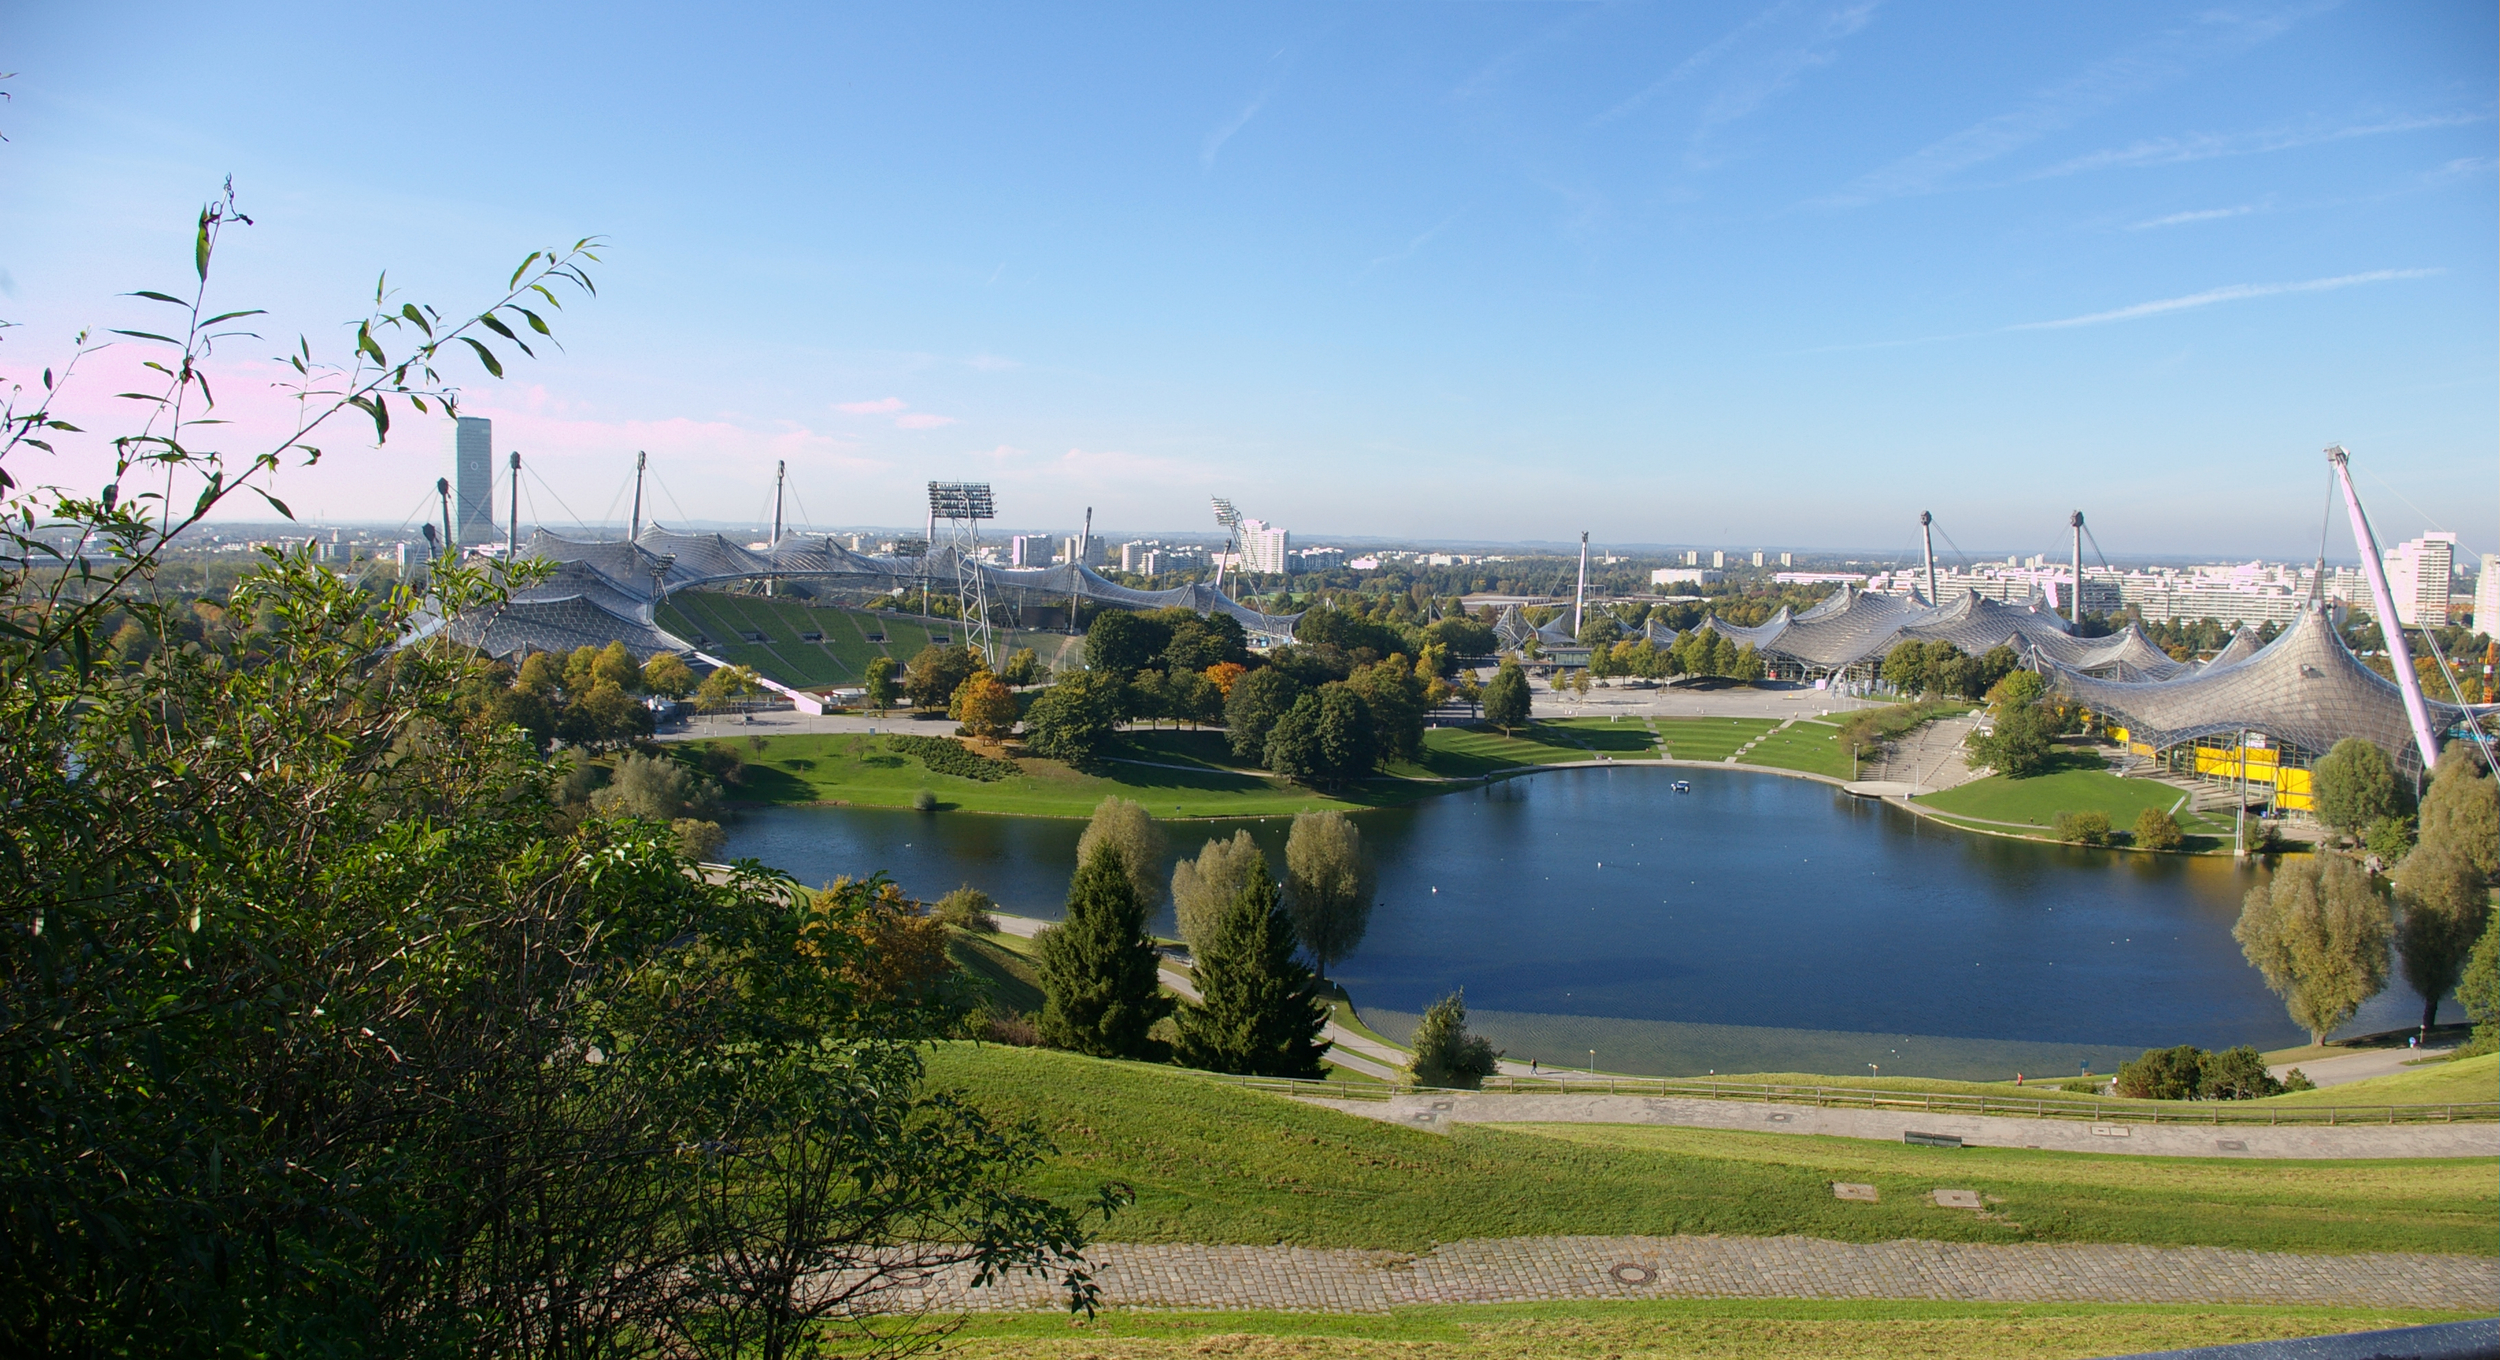 It's in Munich and it sure is pretty.